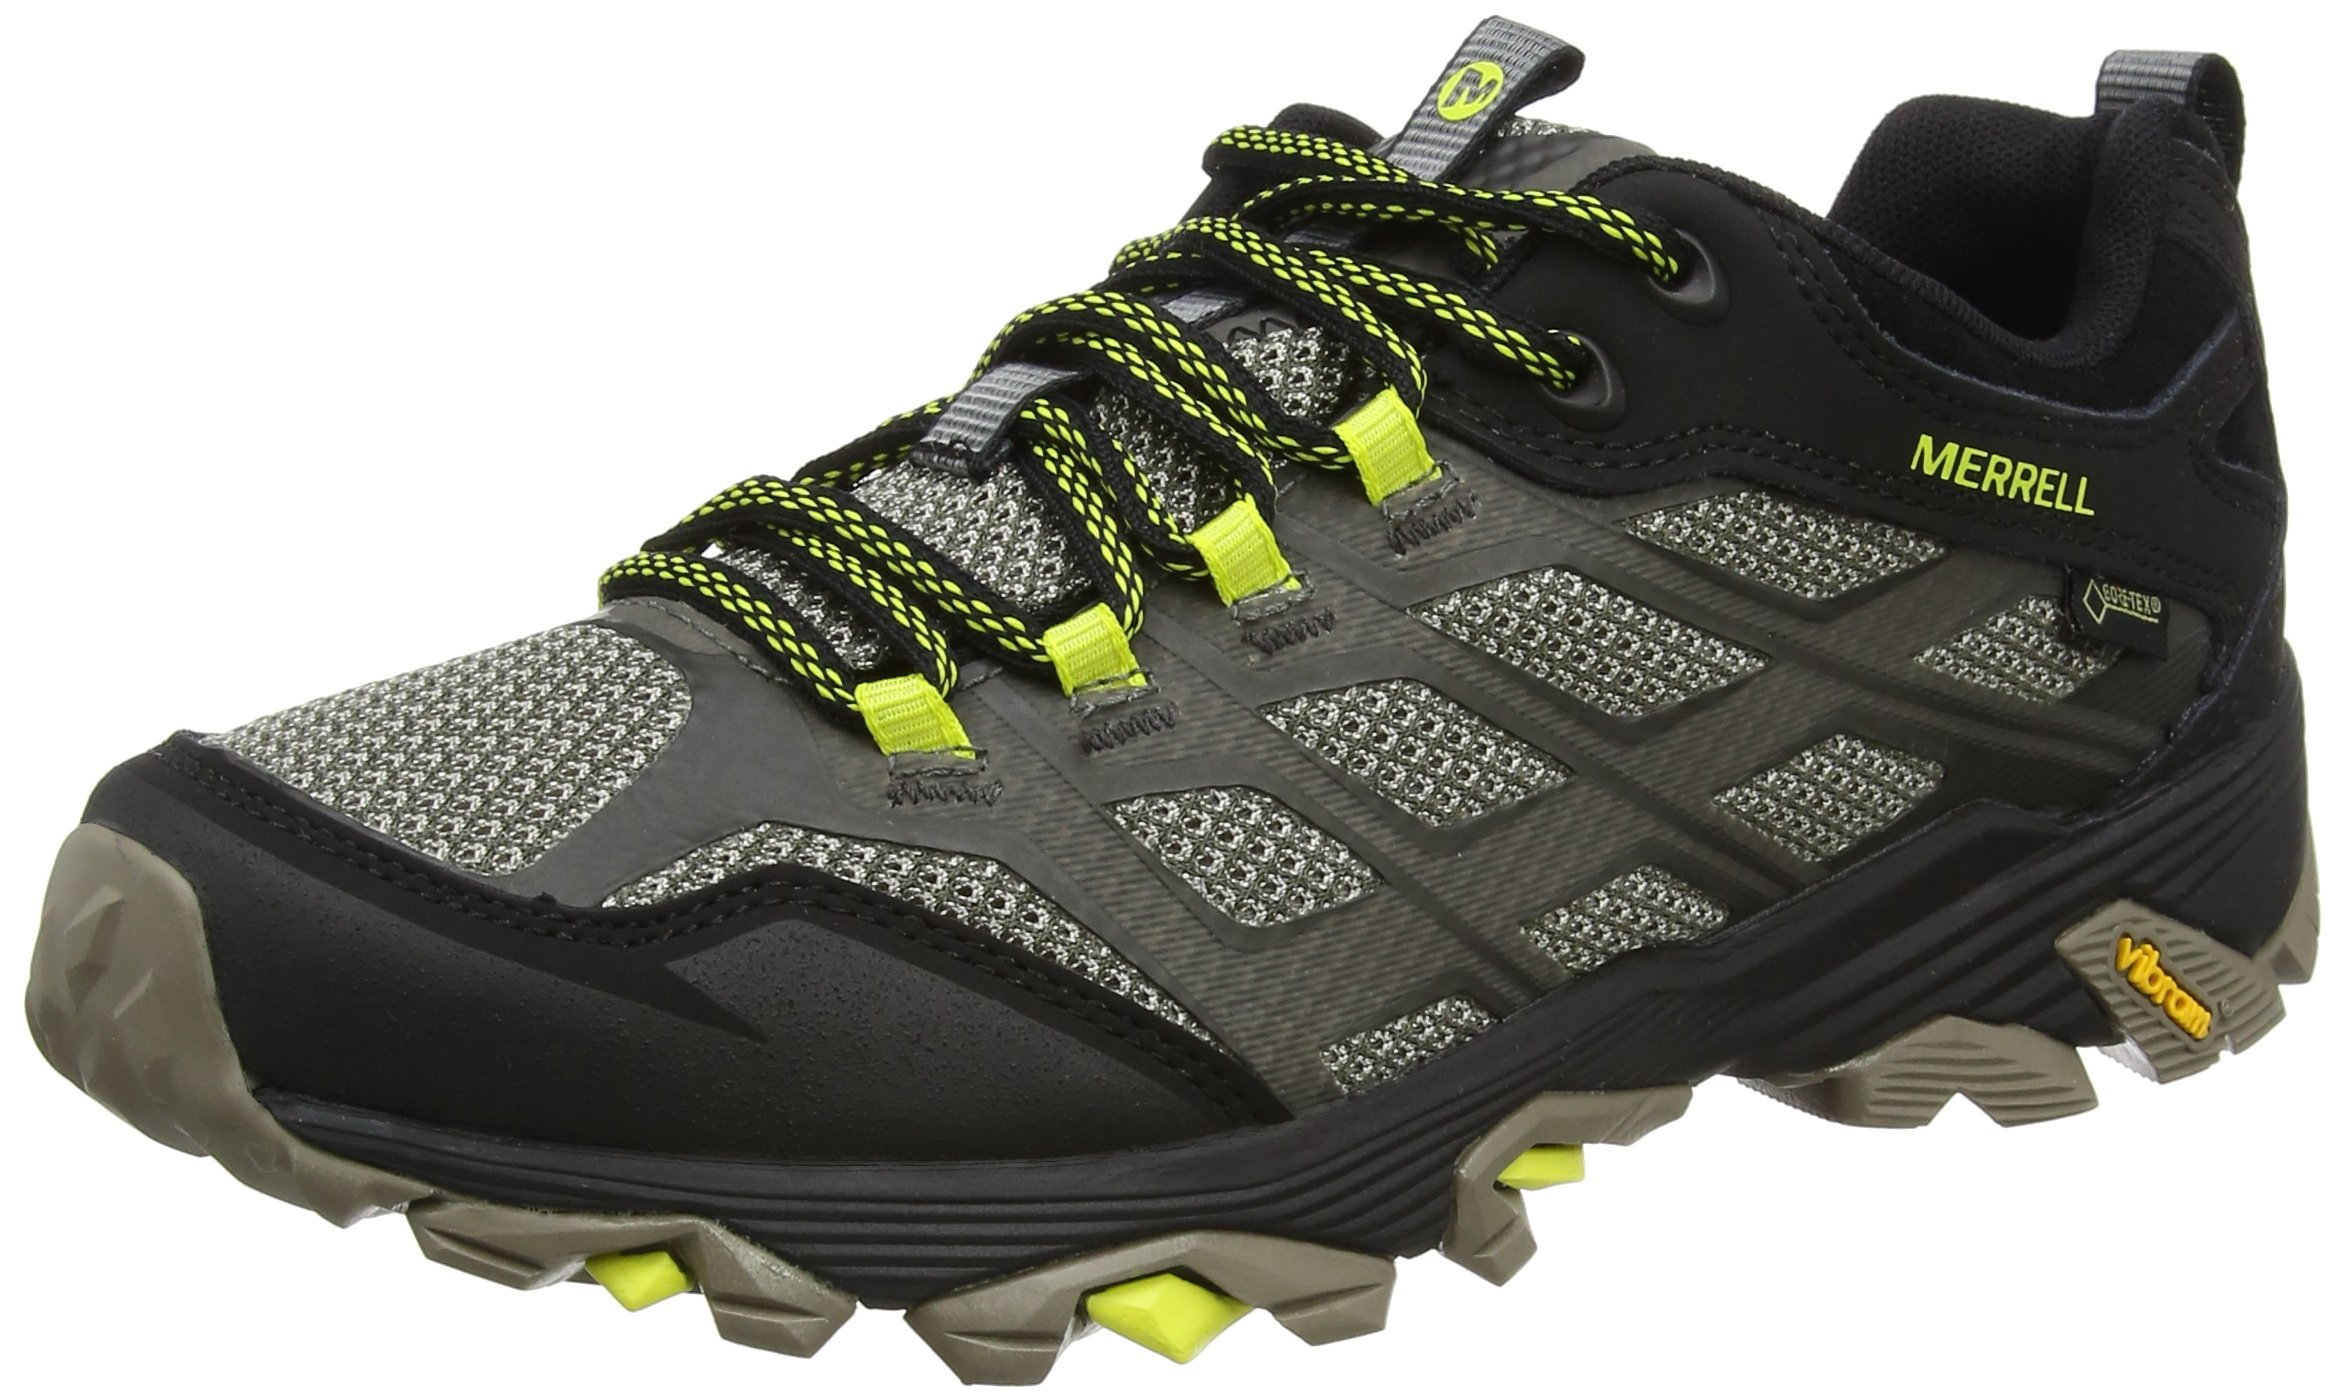 Merrell Moab FST GTX Men's Walking Shoes, Charcoal, US9